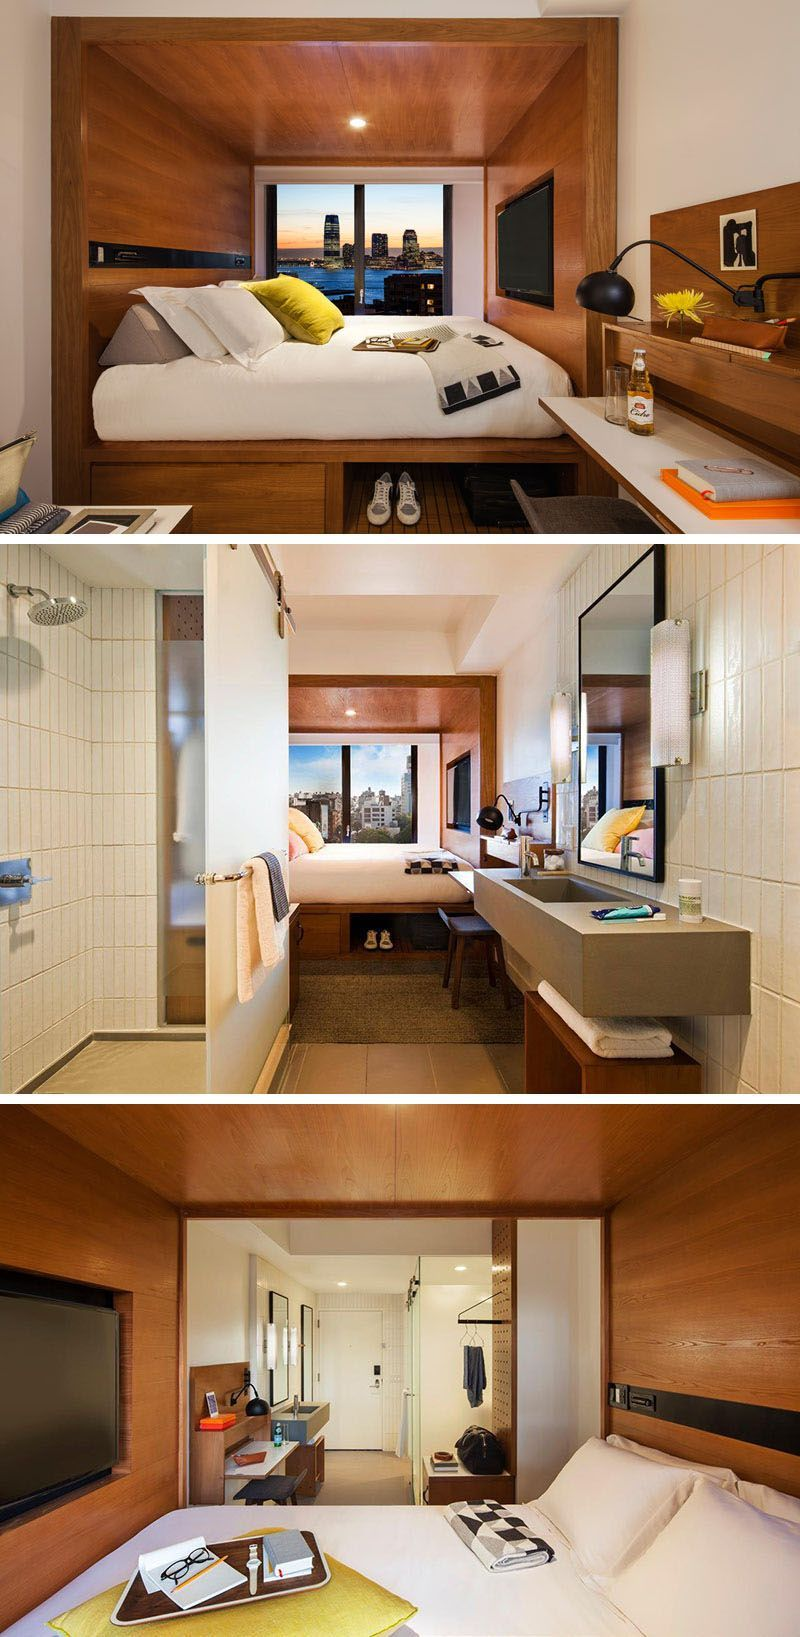 8 Small Hotel Rooms That Maximize Their Tiny Space | Building the ...